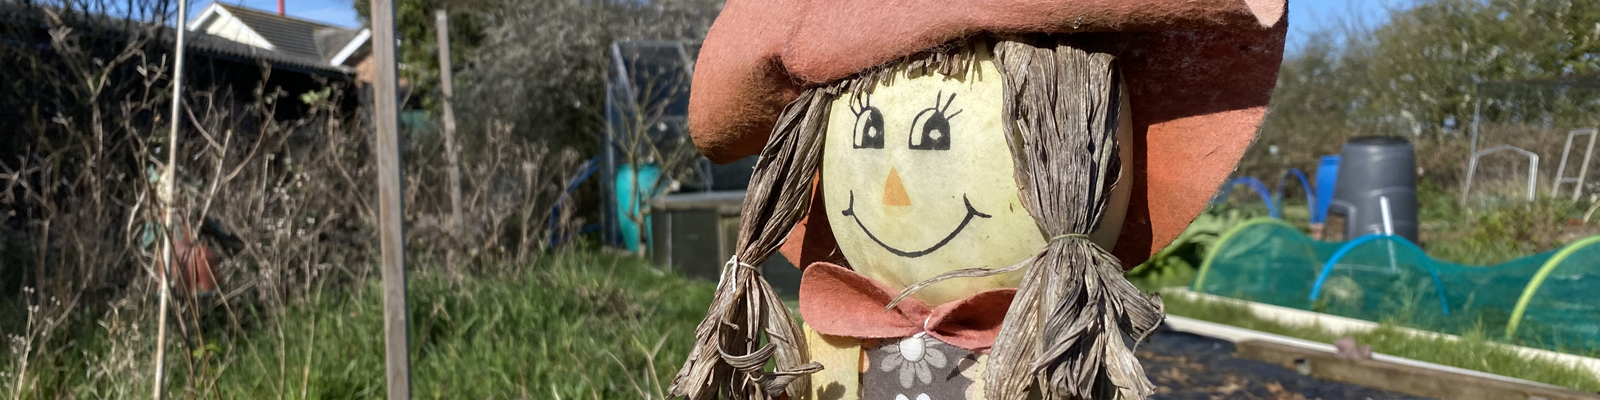 Tollesbury Parish Council, Allotments, Scarecrow In Tollesbury Allotment